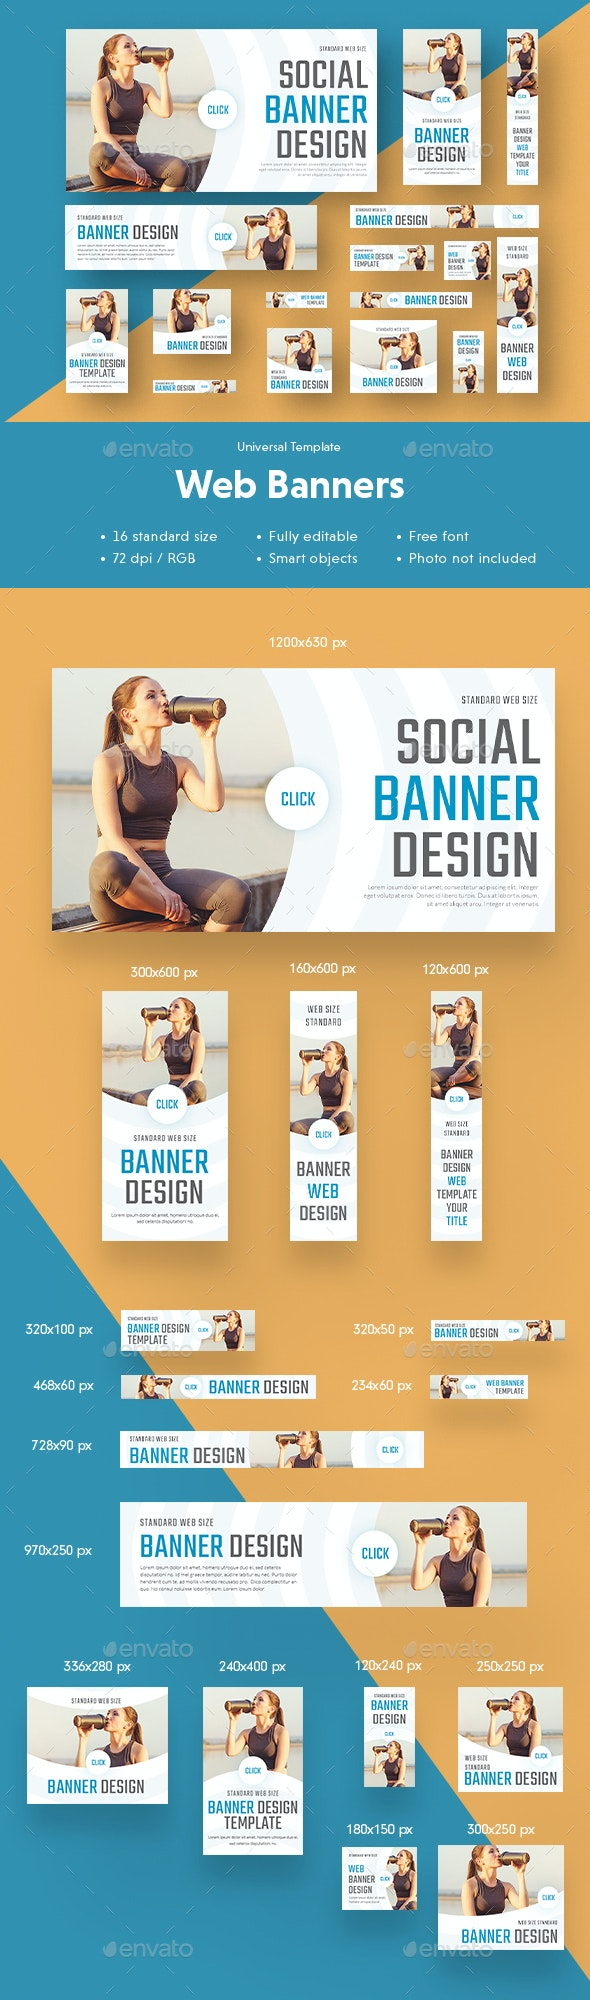 Multipurpose Web Banners Sport Template - Banners & Ads Web Elements